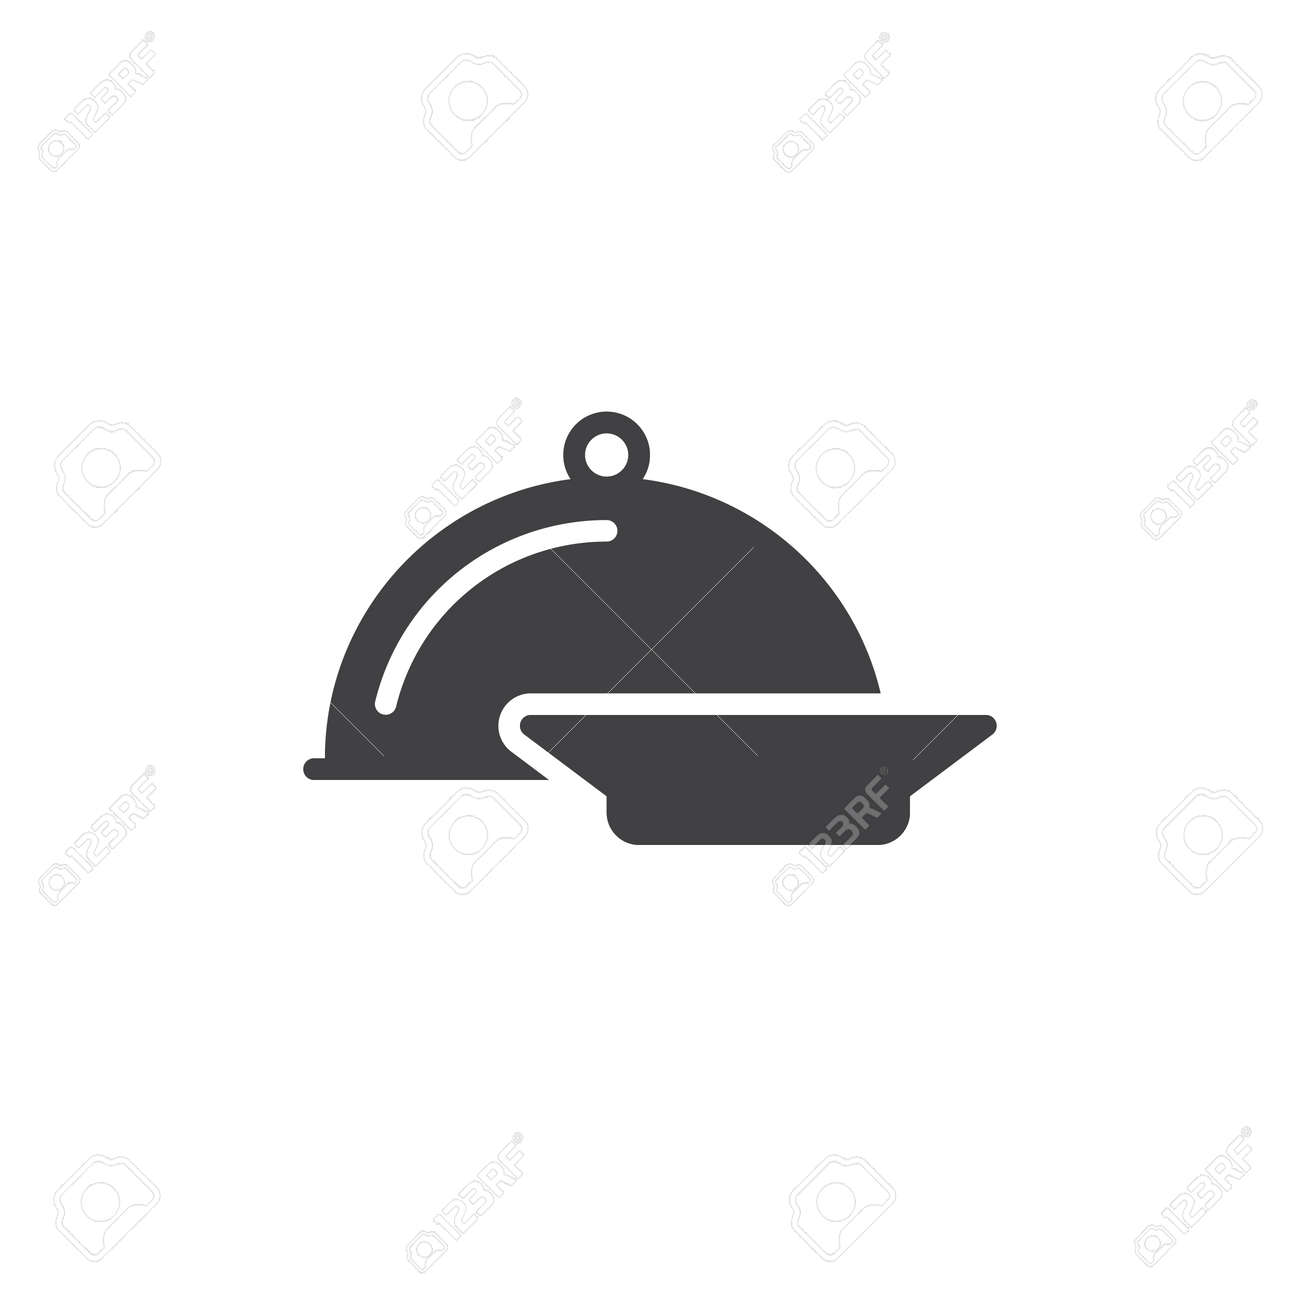 Dinner icon vector filled flat sign solid pictogram isolated on white. Food cover  sc 1 st  123RF.com & Dinner Icon Vector Filled Flat Sign Solid Pictogram Isolated ...